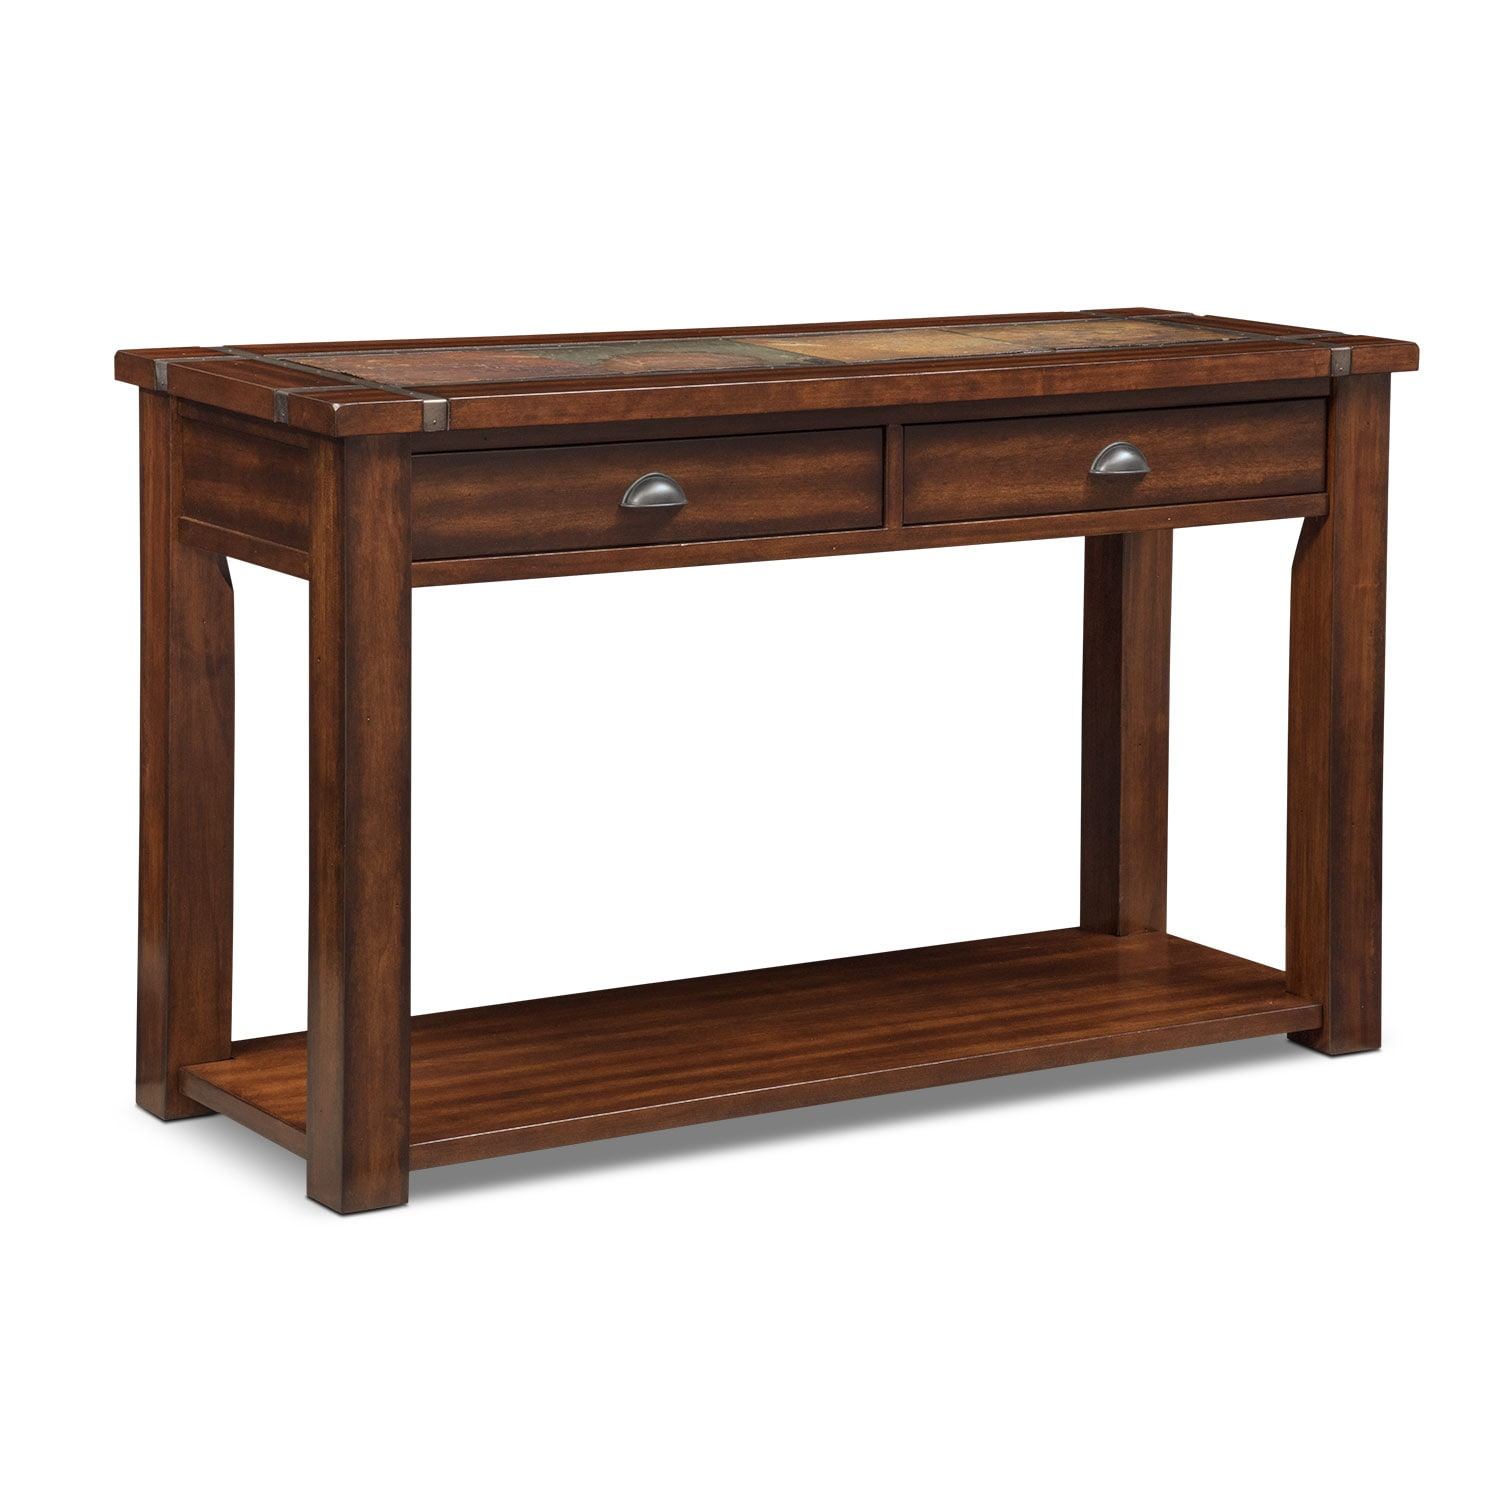 Slate Ridge Sofa Table - Cherry